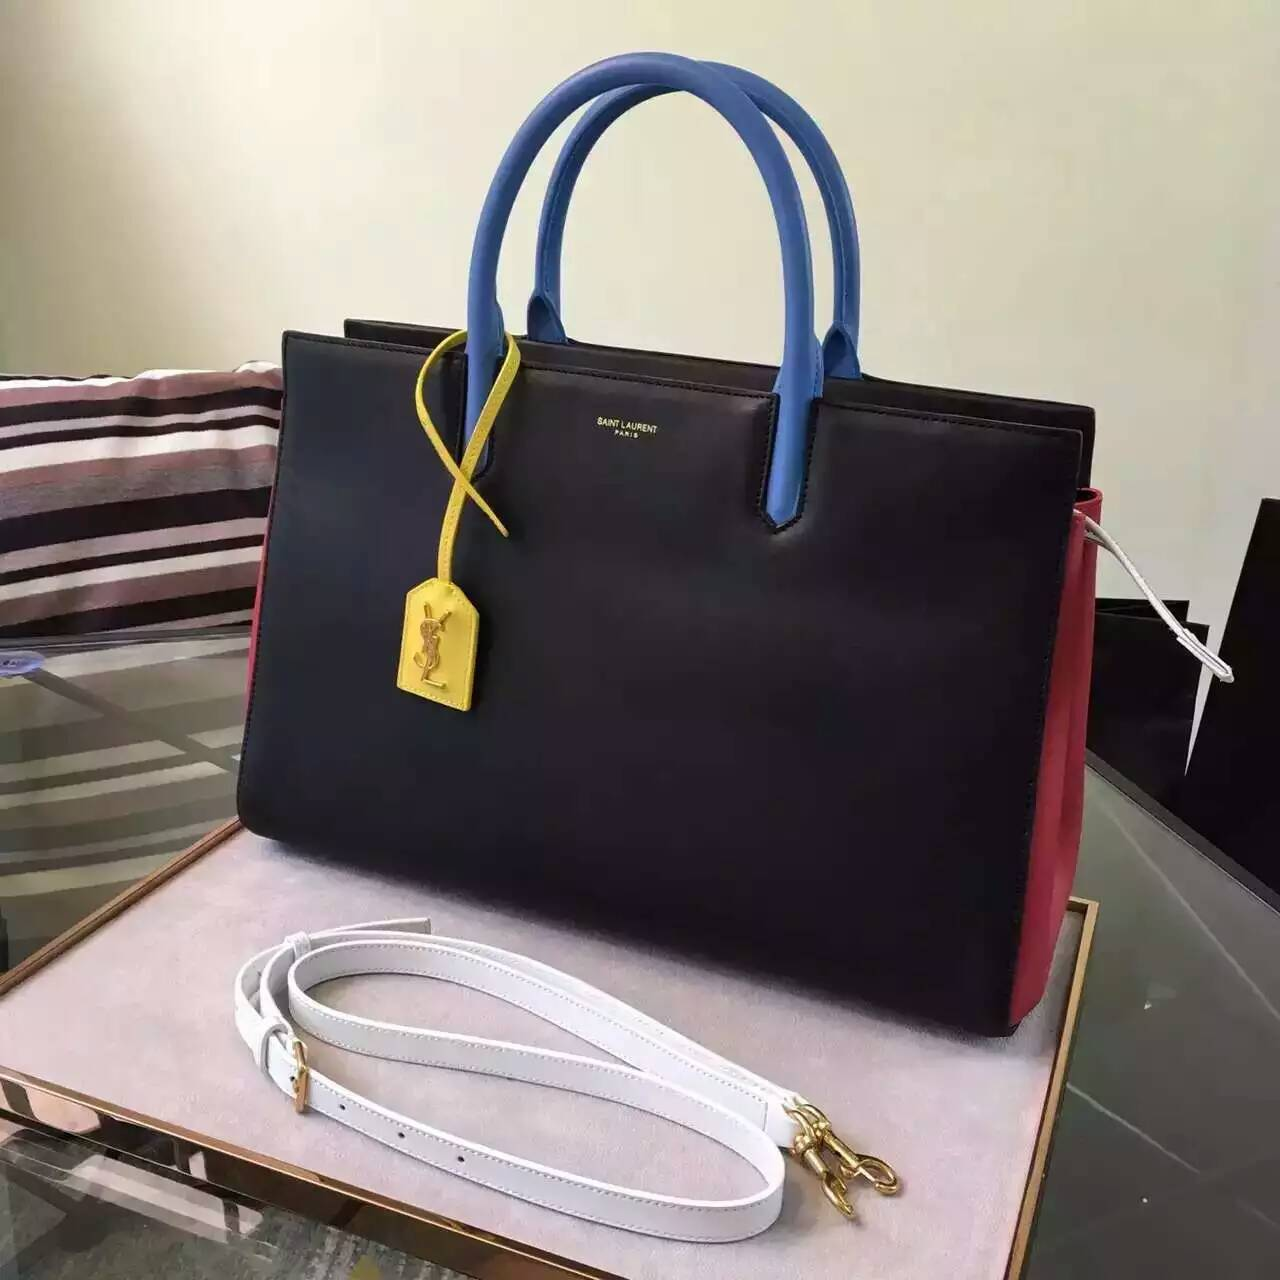 Ysl Handbag New Eve St Laurent Bags